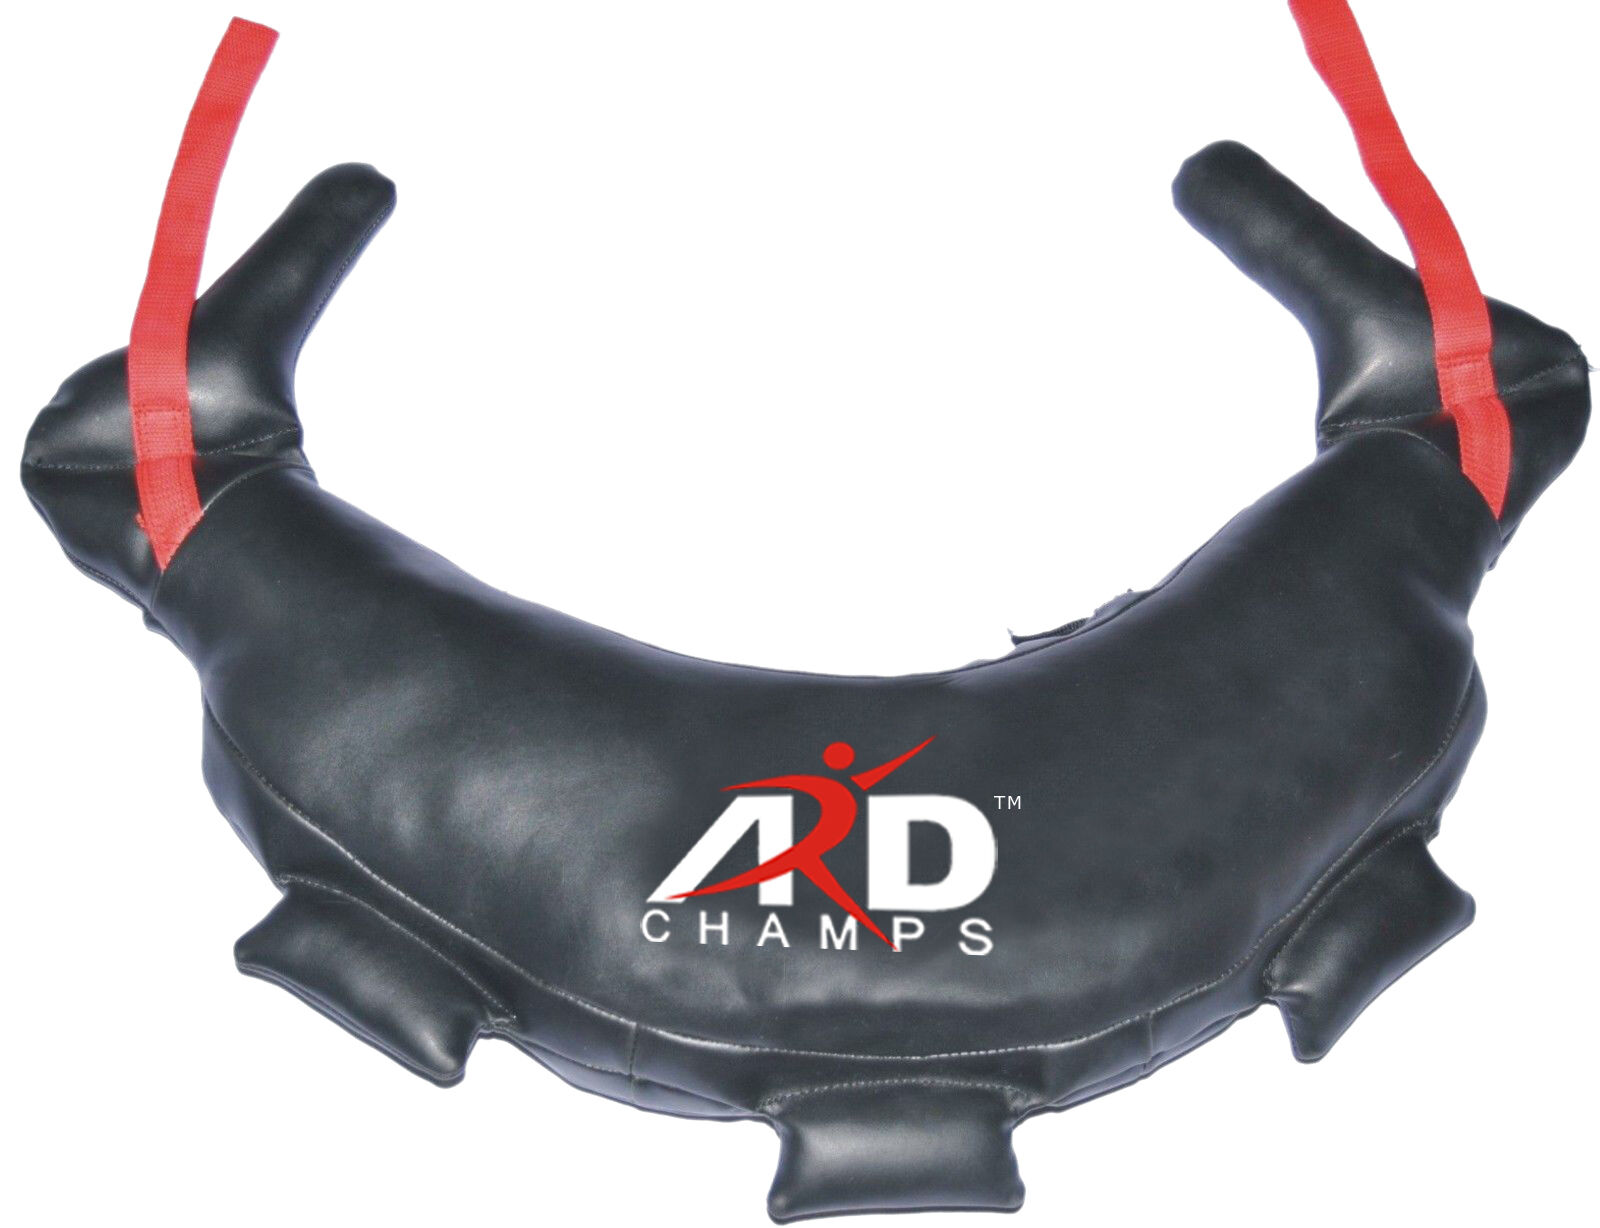 ARD CHAMPS™ FITNESS GYM TRAINING STRENGTHEN WORKOUT SAND BAG 15 KG BULGARIAN